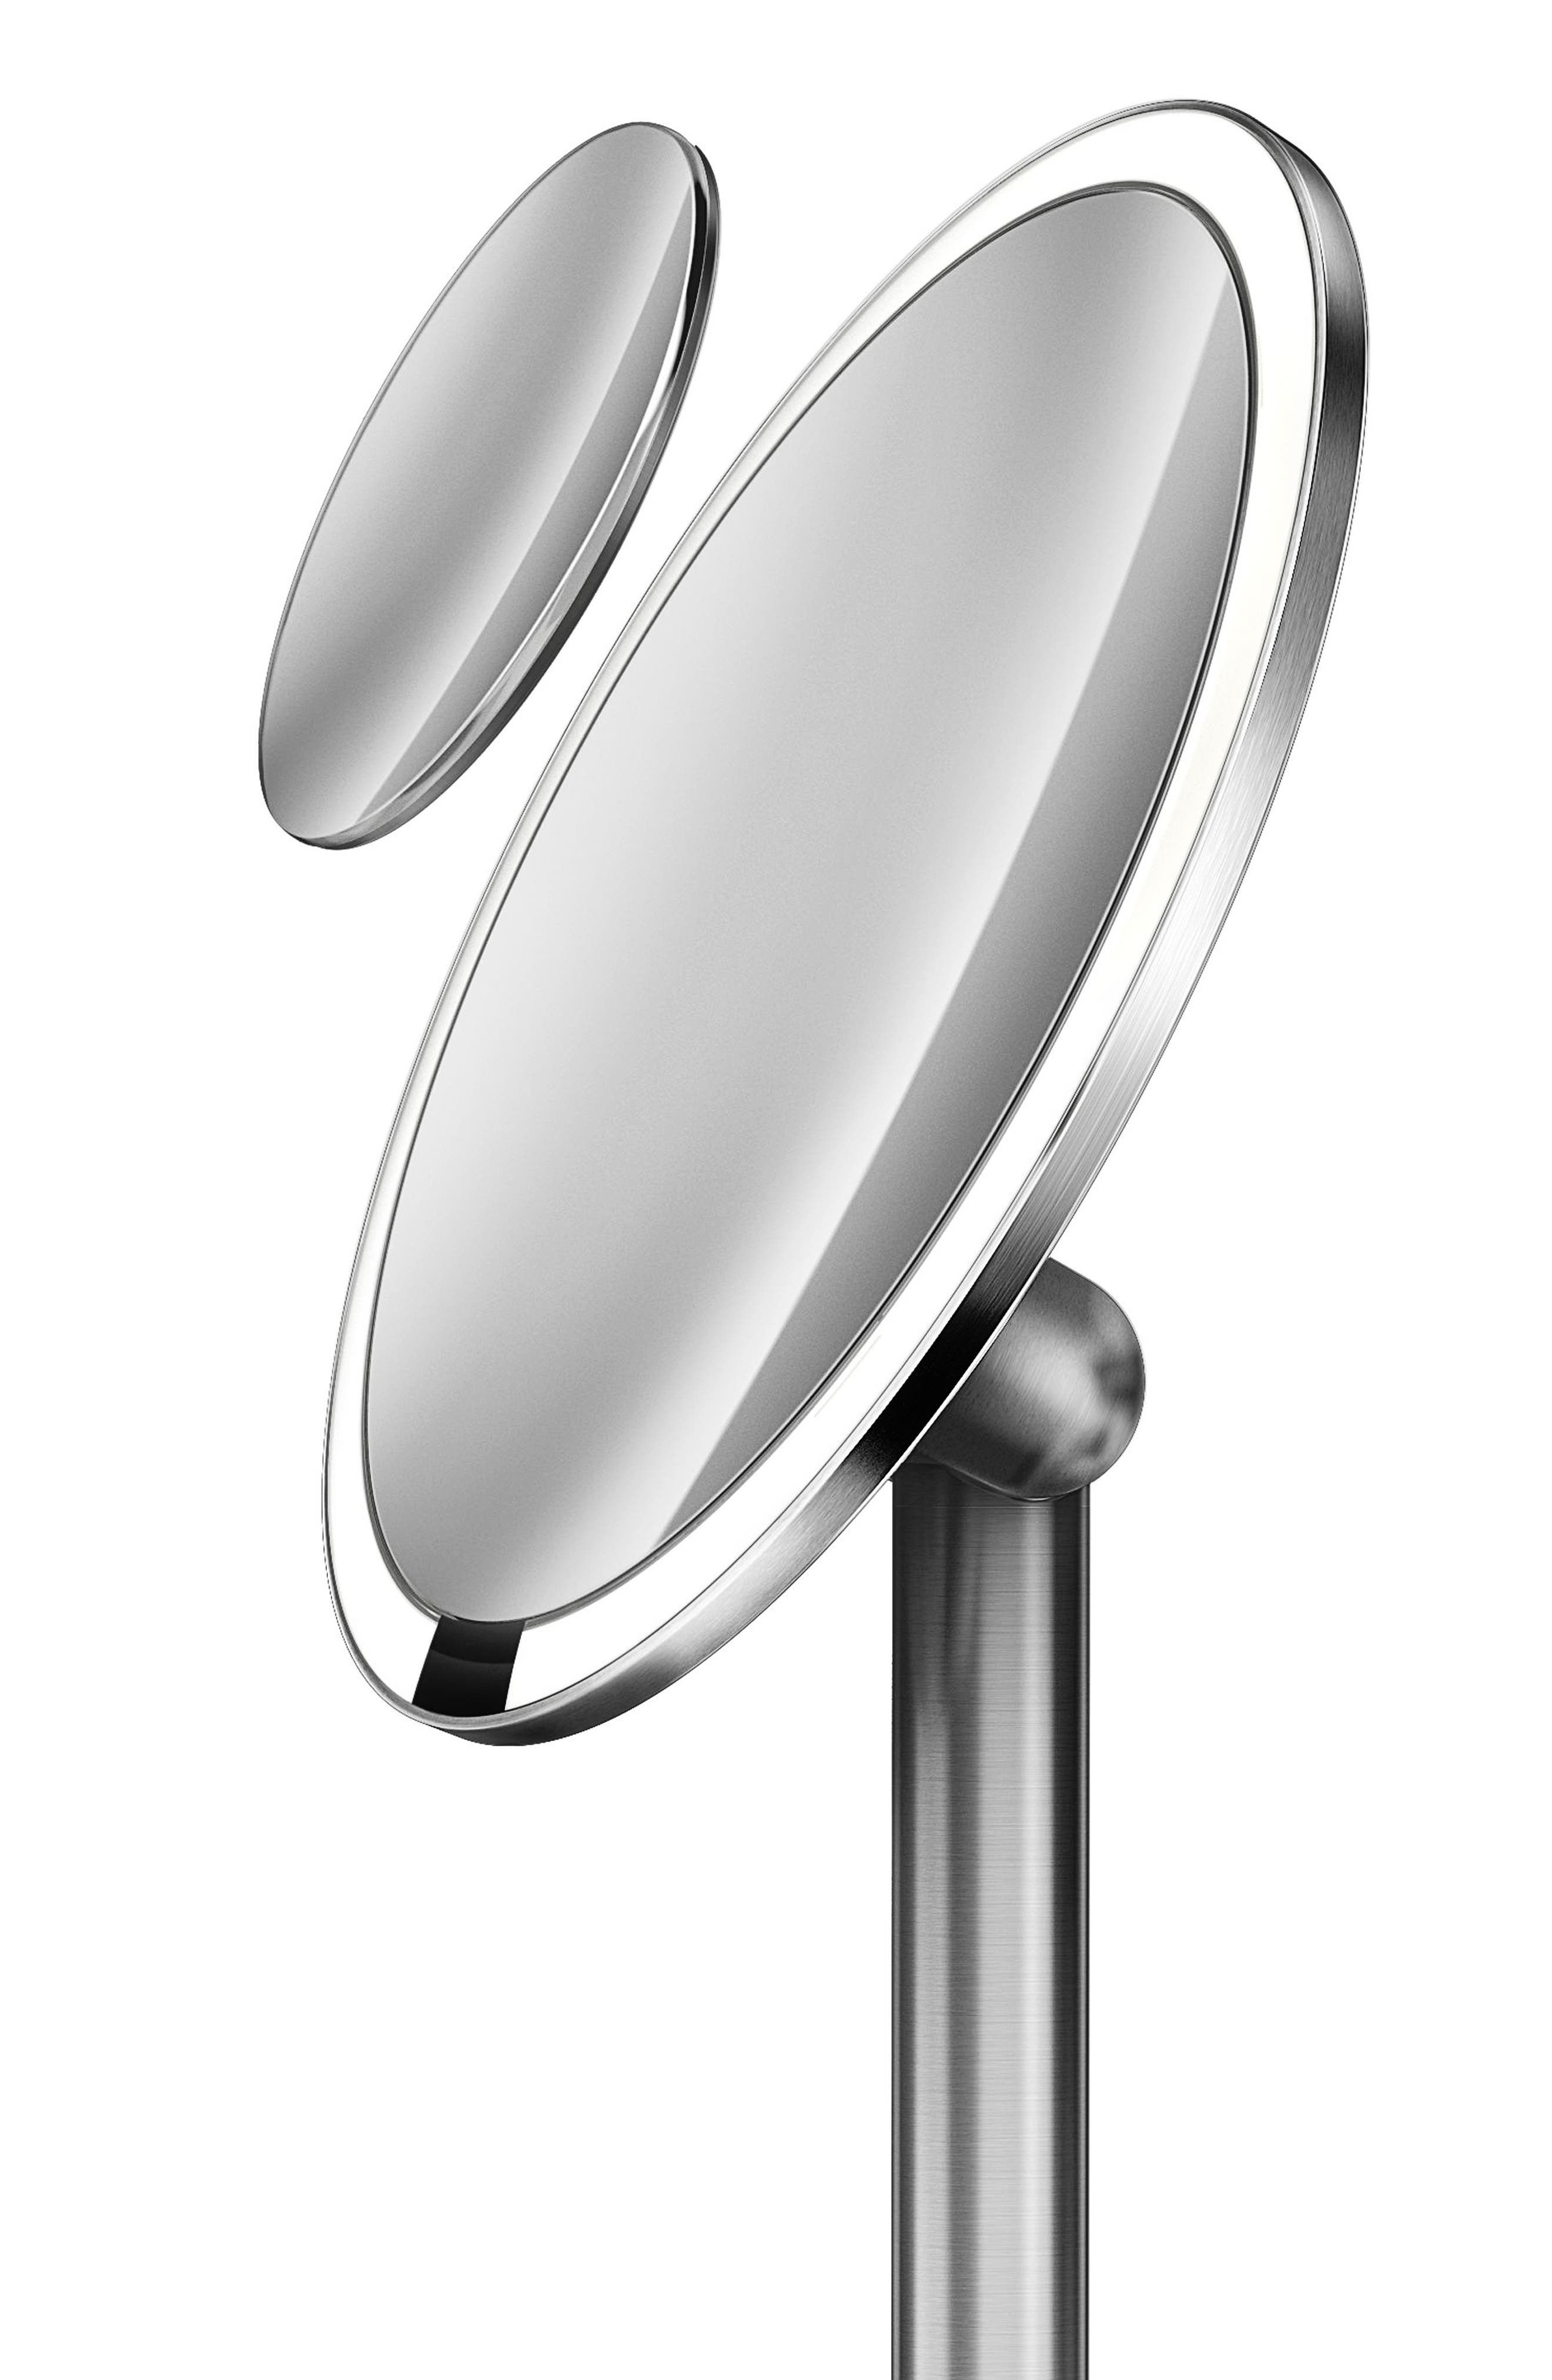 Round Sensor Mirror Pro,                             Alternate thumbnail 4, color,                             Stainless Steel